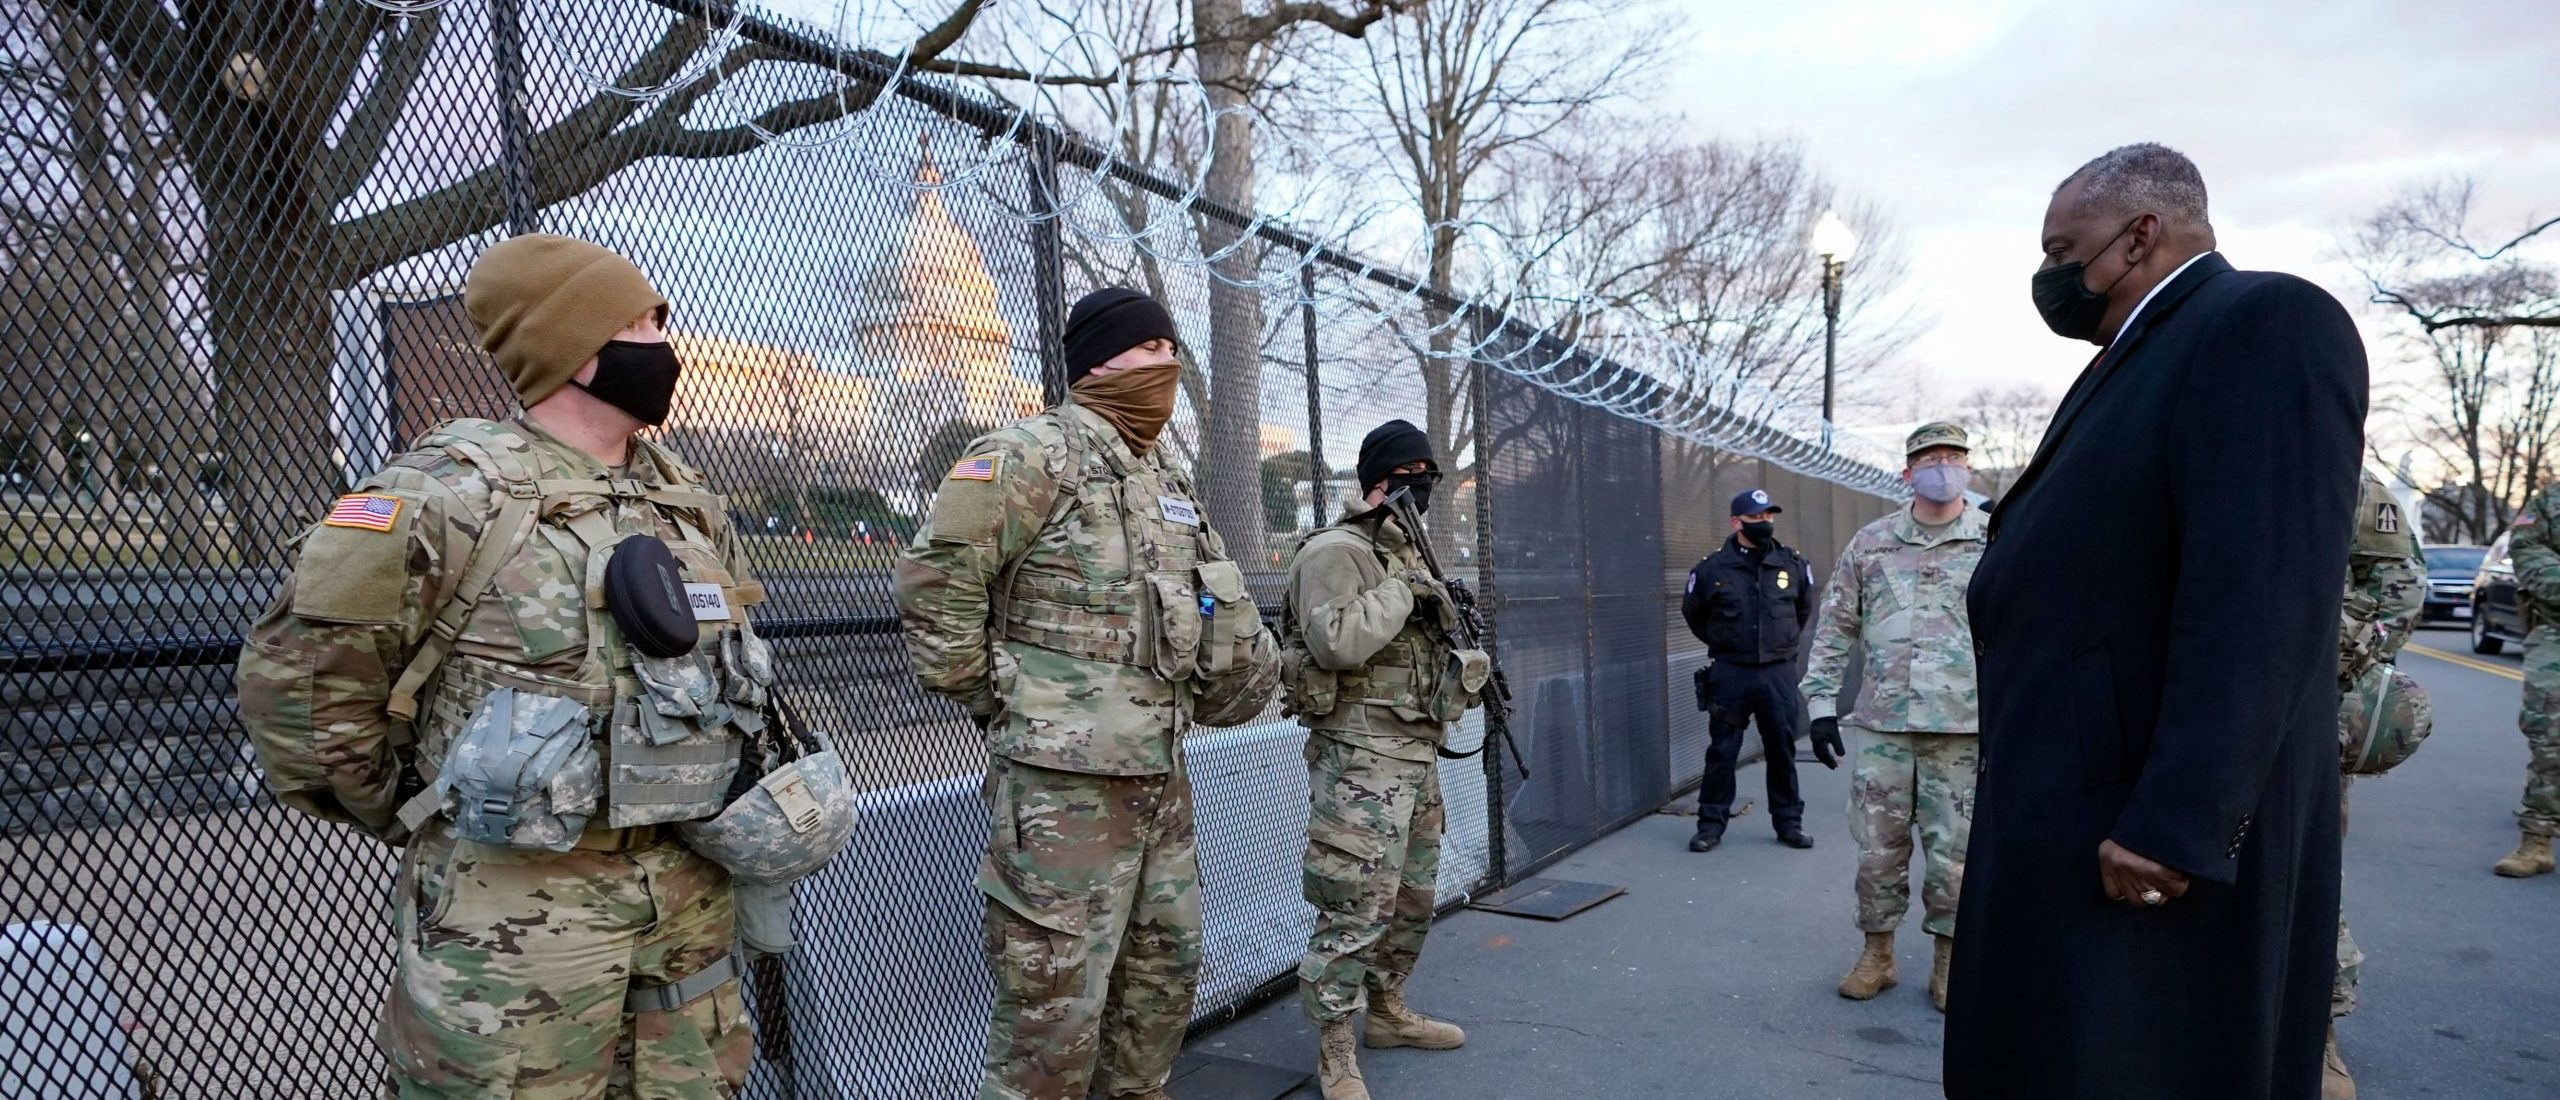 Secretary of Defense Lloyd Austin (L) visits National Guard troops deployed at the US Capitol and its perimeter, on January 29, 2021 on Capitol Hill in Washington, DC. (Photo by Manuel Balce Ceneta/AFP via Getty Images)